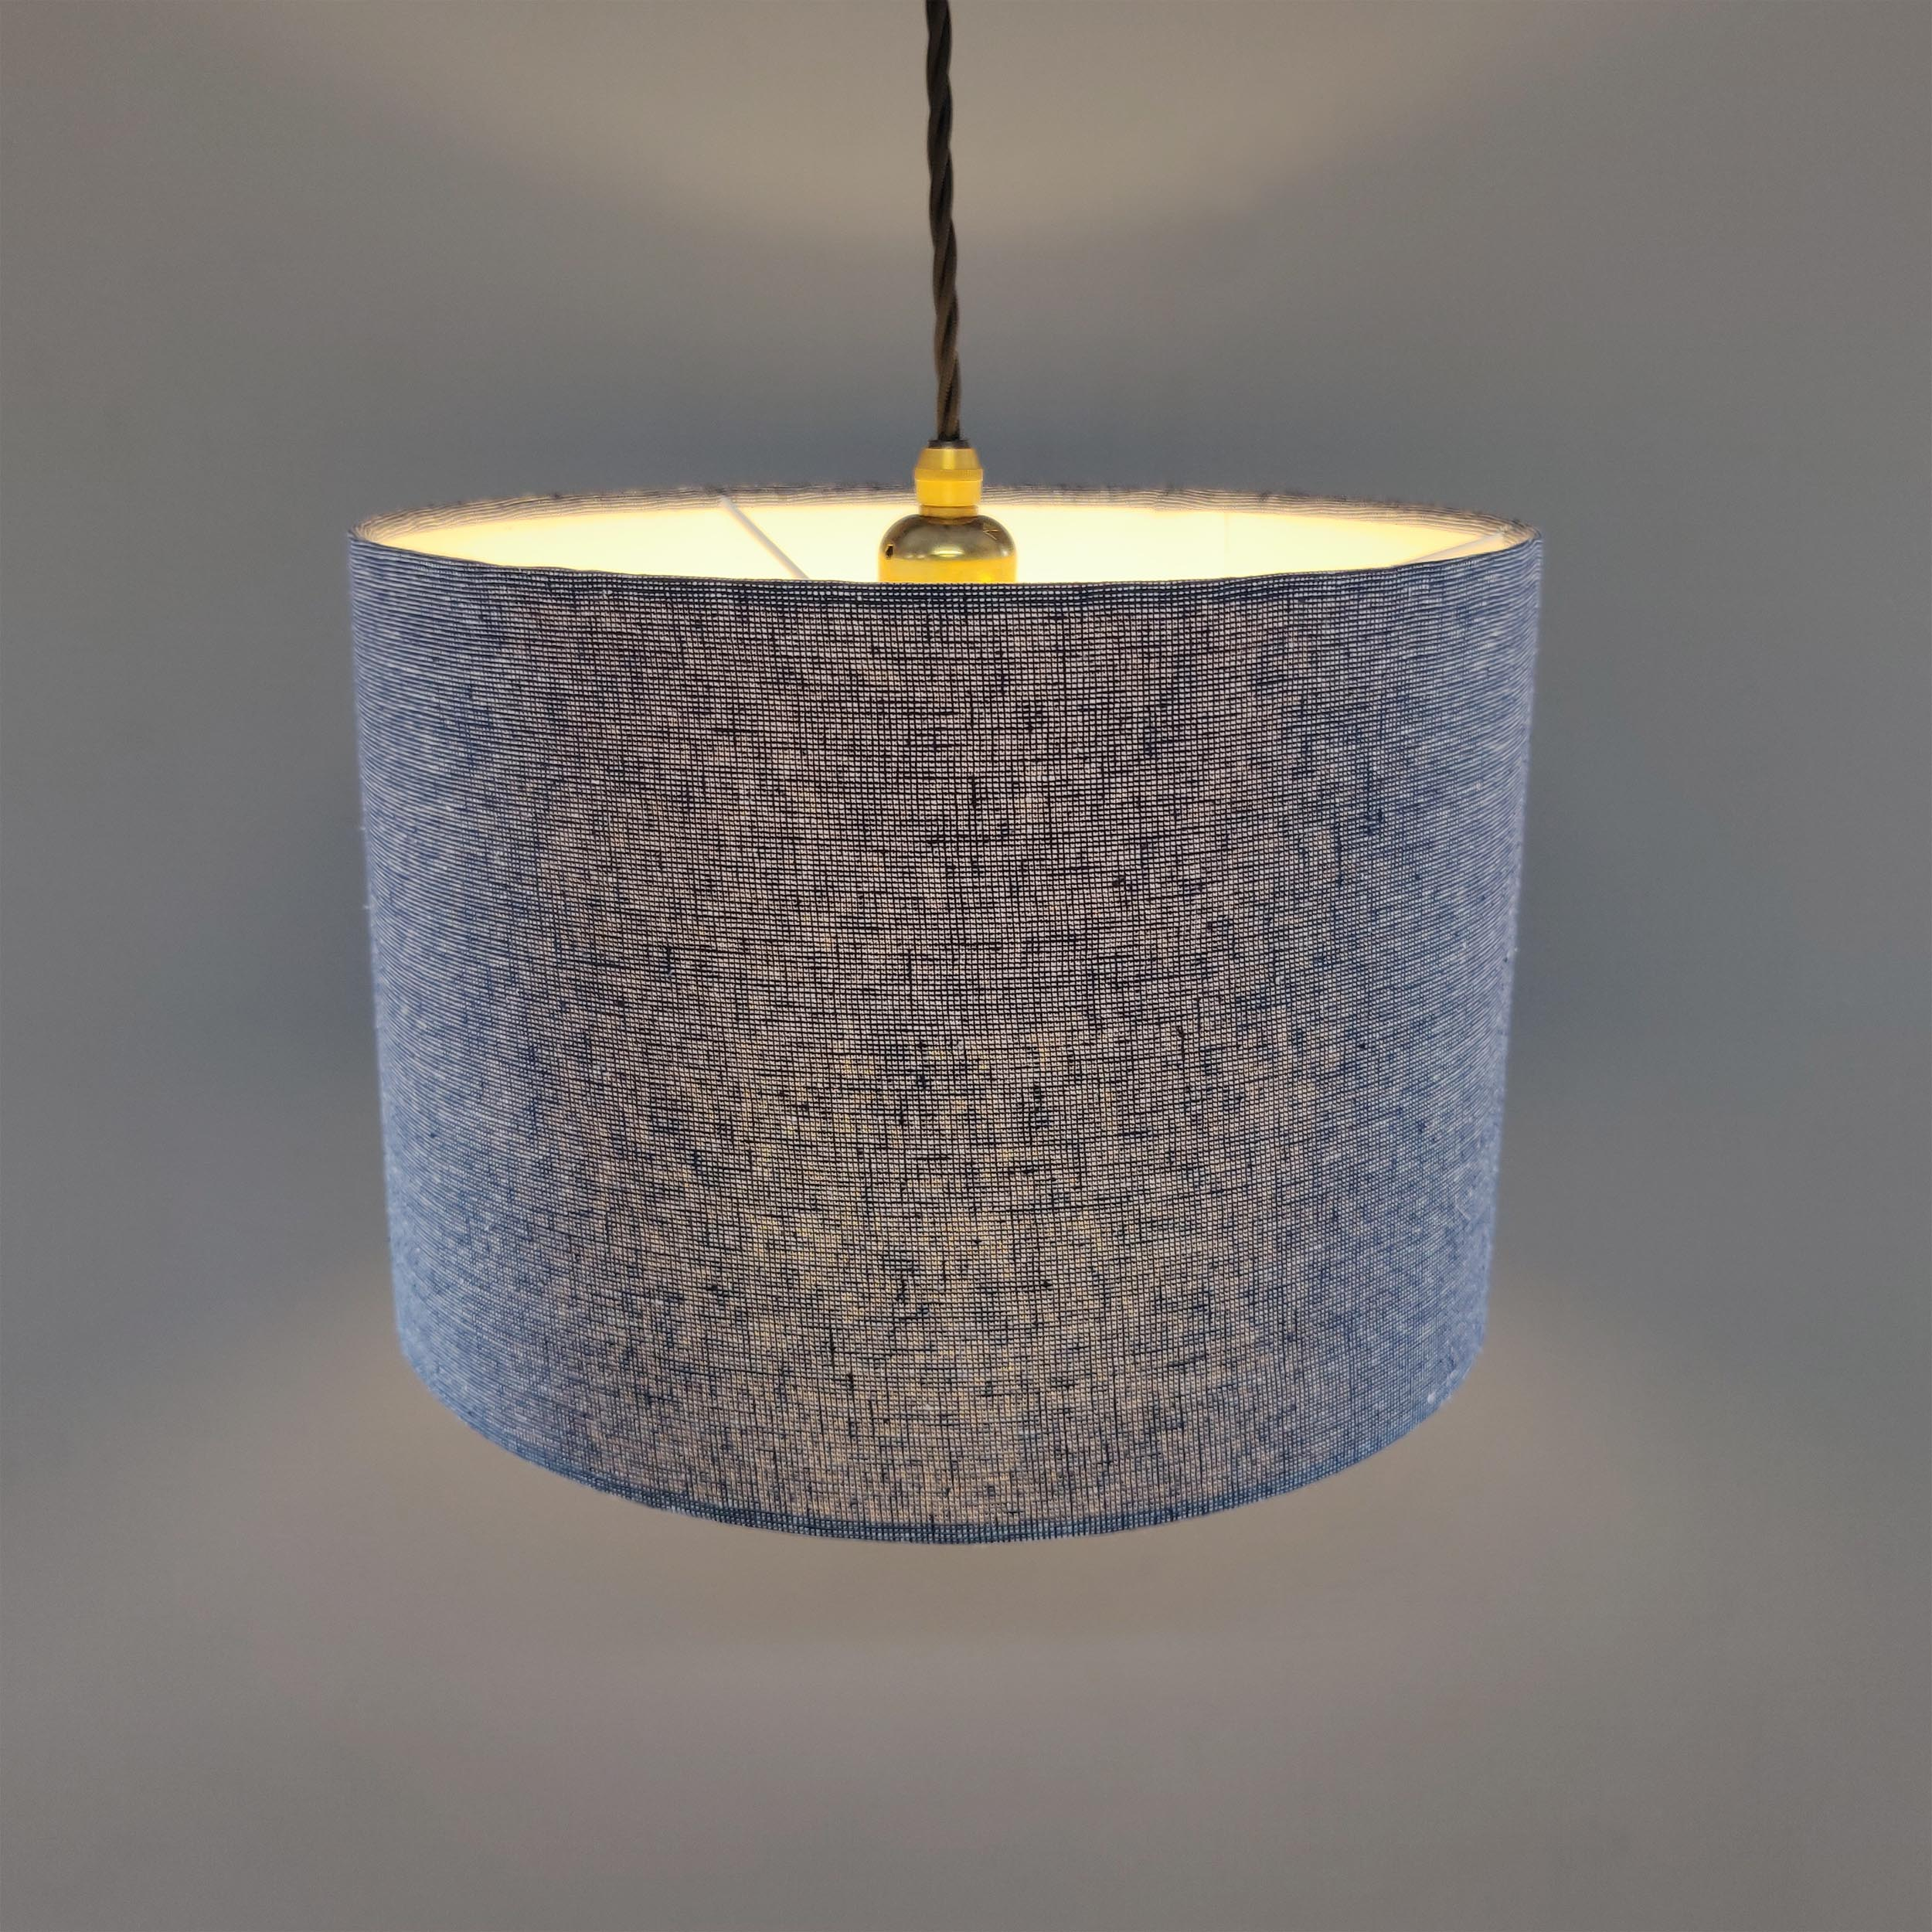 Woven blue Linen Look Fabric Lampshade